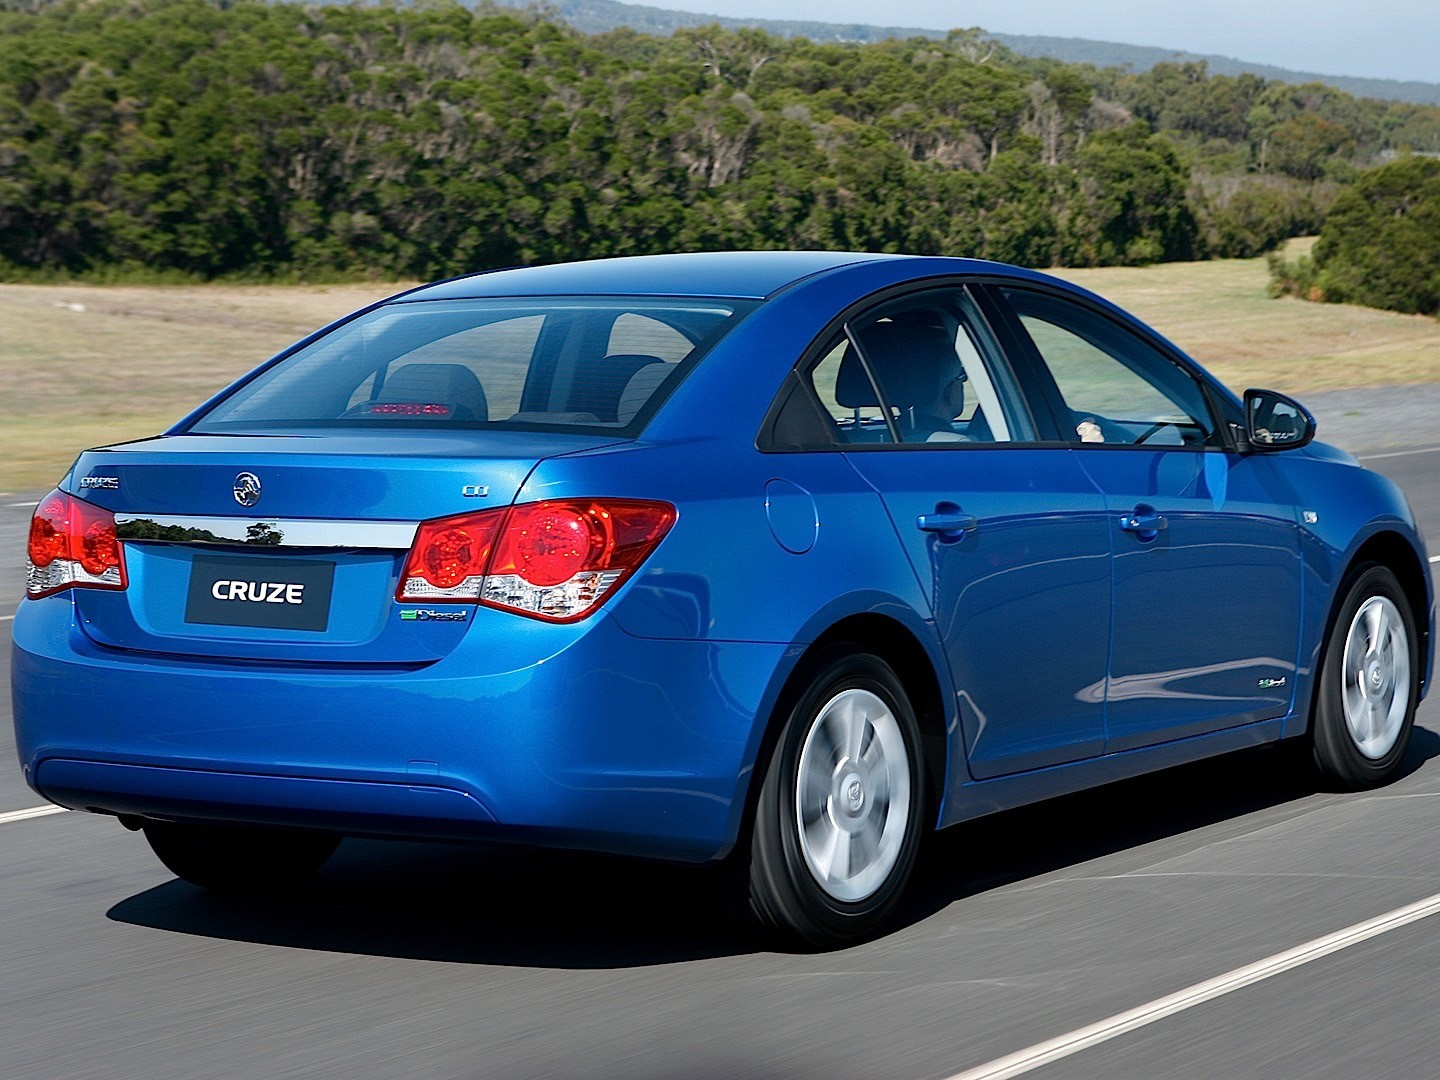 Chevy Small Suv >> HOLDEN Cruze specs - 2008, 2009, 2010, 2011, 2012, 2013 ...